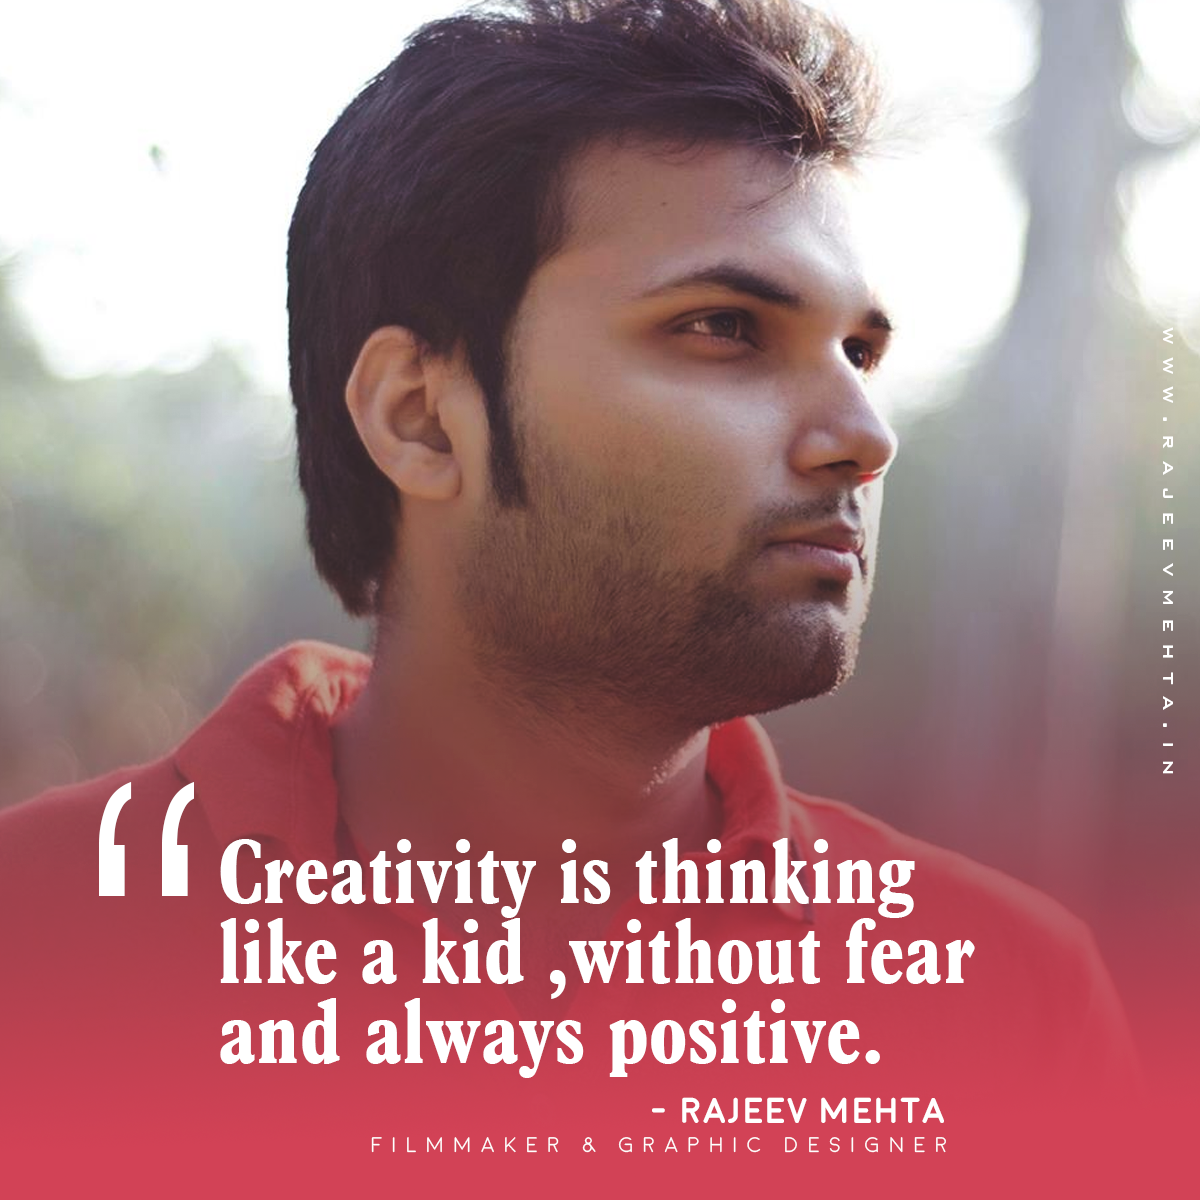 Creativity is thinking like a kid , without fear and always positive. - Rajeev Mehta (Filmmaker and Graphic Designer)